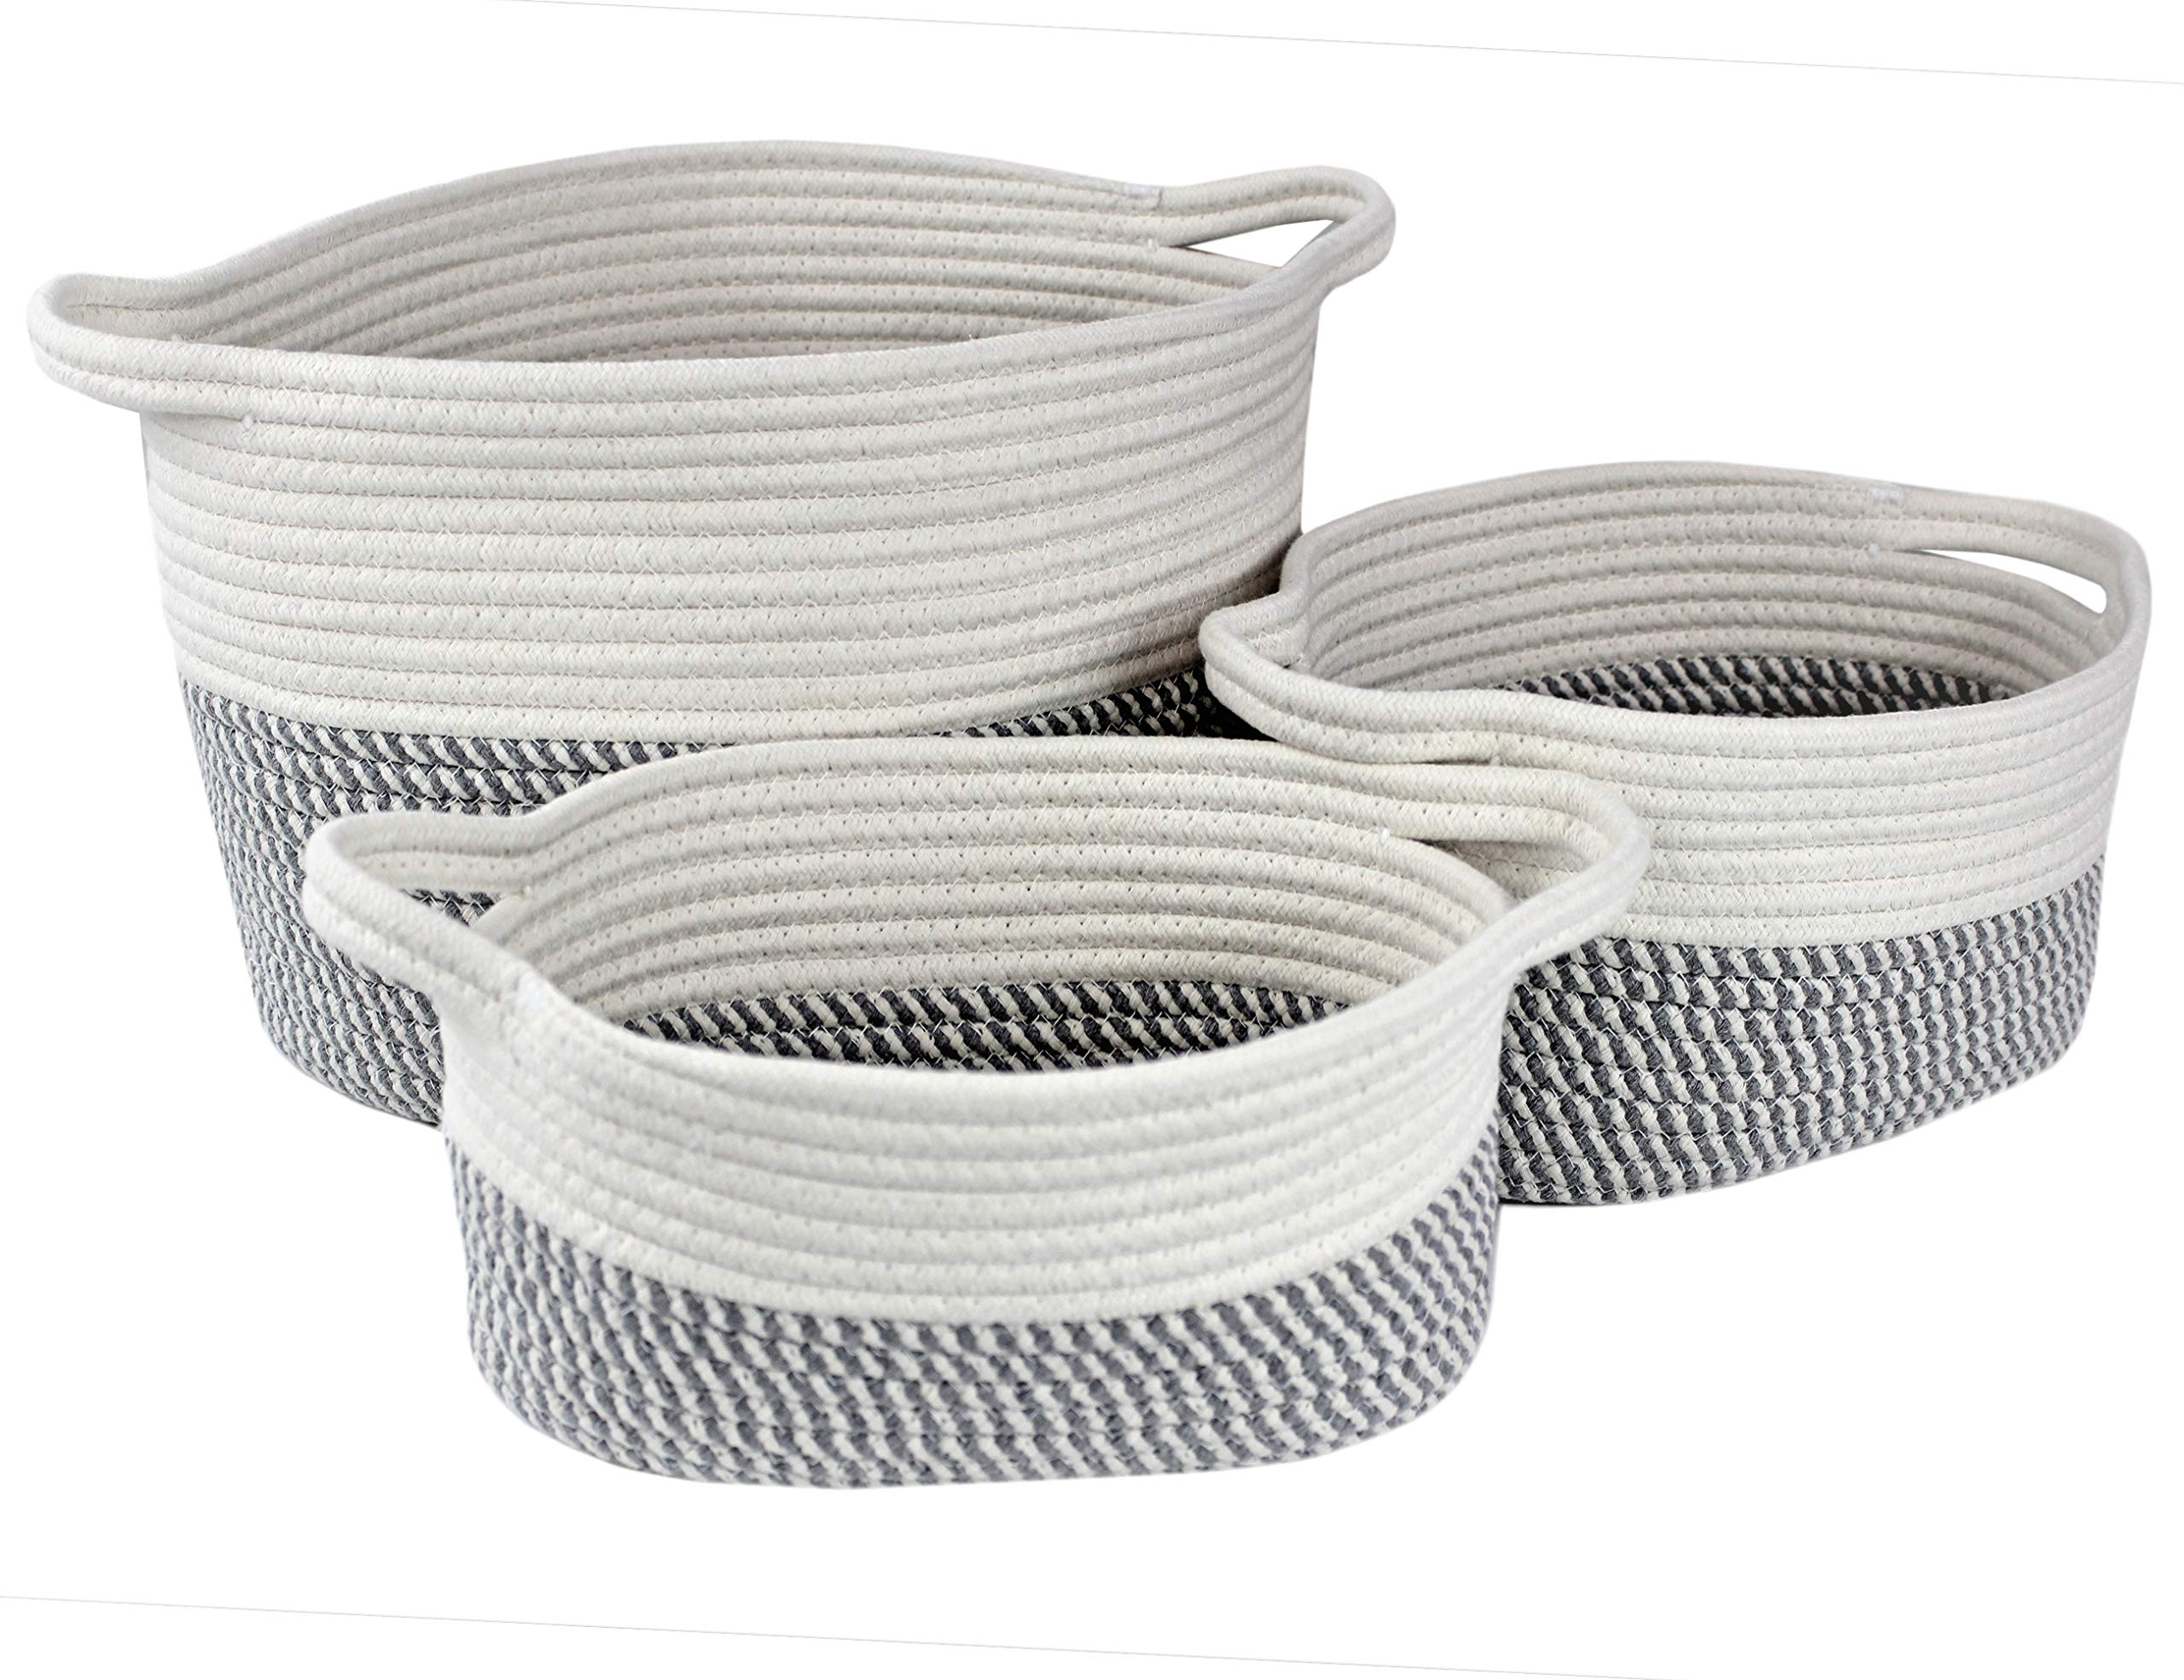 Bins & Things Cotton Rope Basket - Set of 3 Woven Basket -